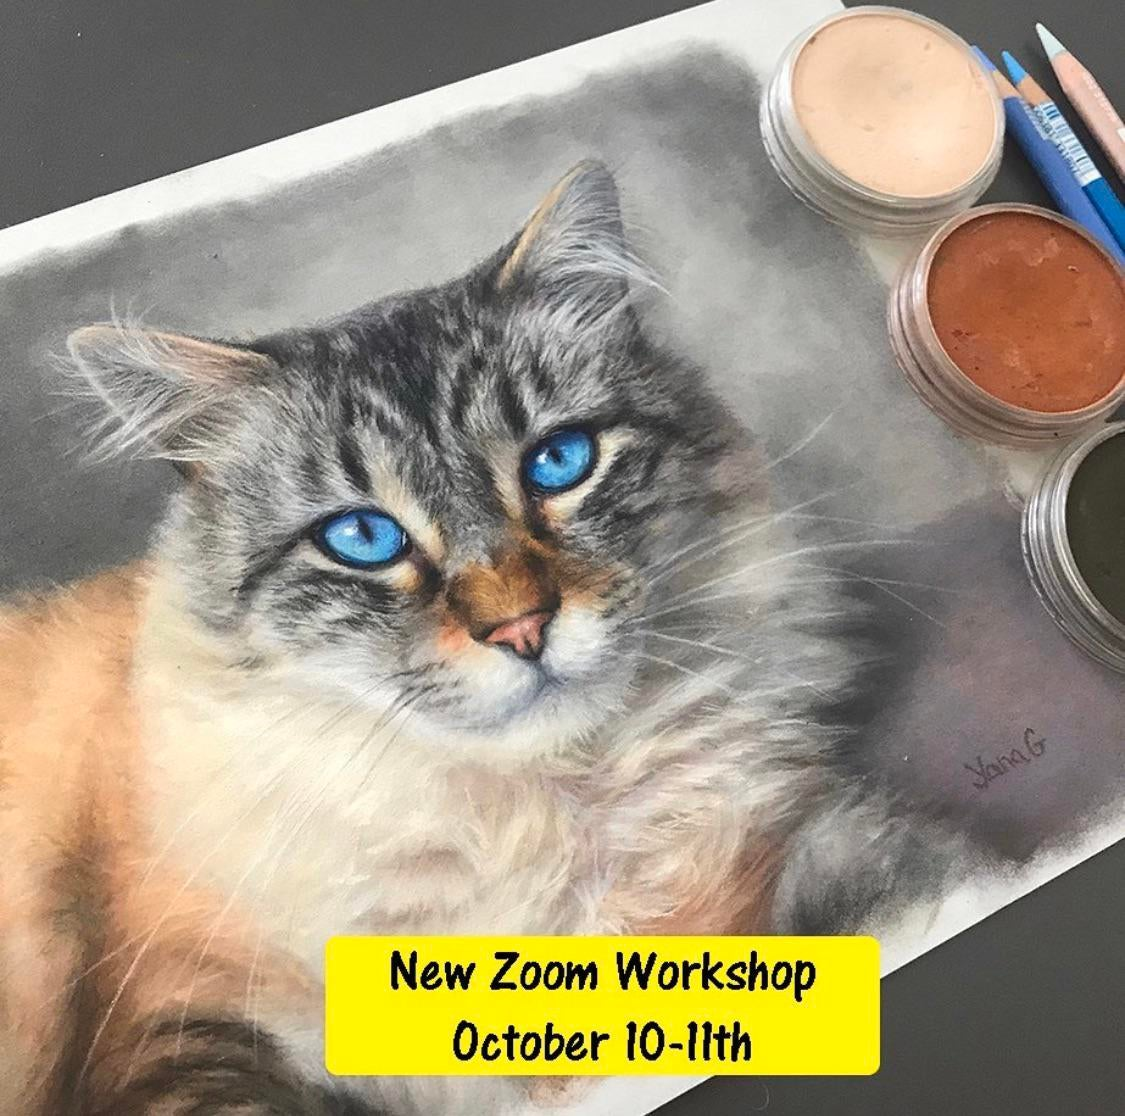 ndo1du2055p51 - In this 2 day workshop I'll teach you how to create realistic pet portrait with pastel. - home, hobbies